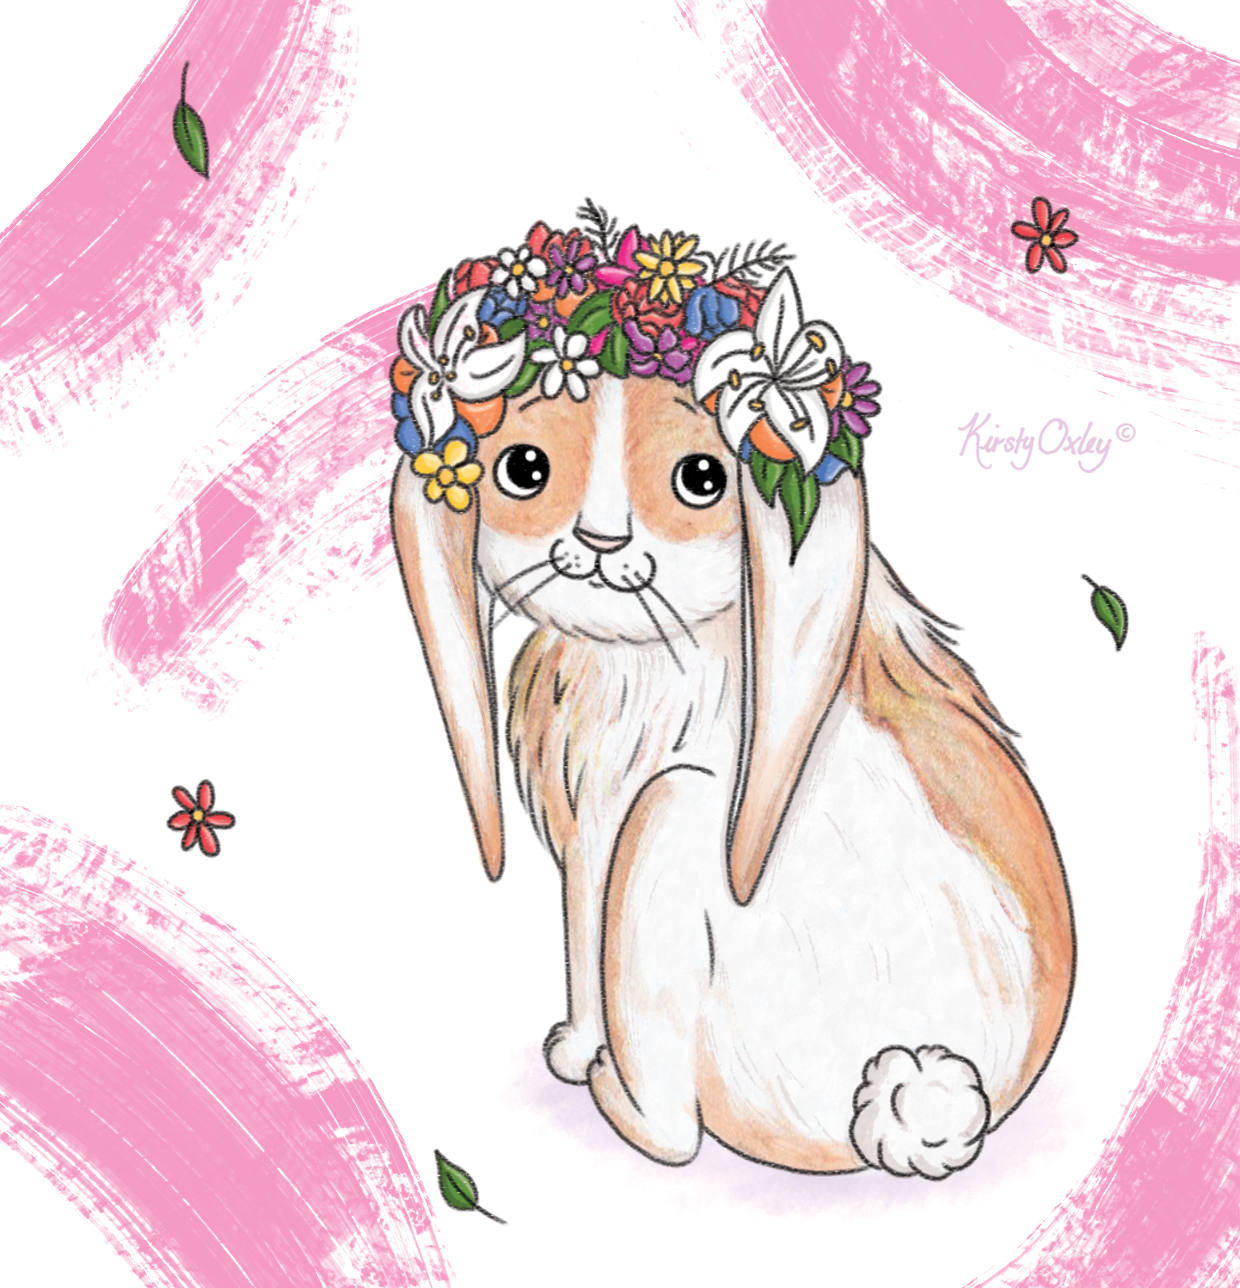 Easter_Bunny_Flower_Crown_Kirsty_Oxley_Illustration .jpg